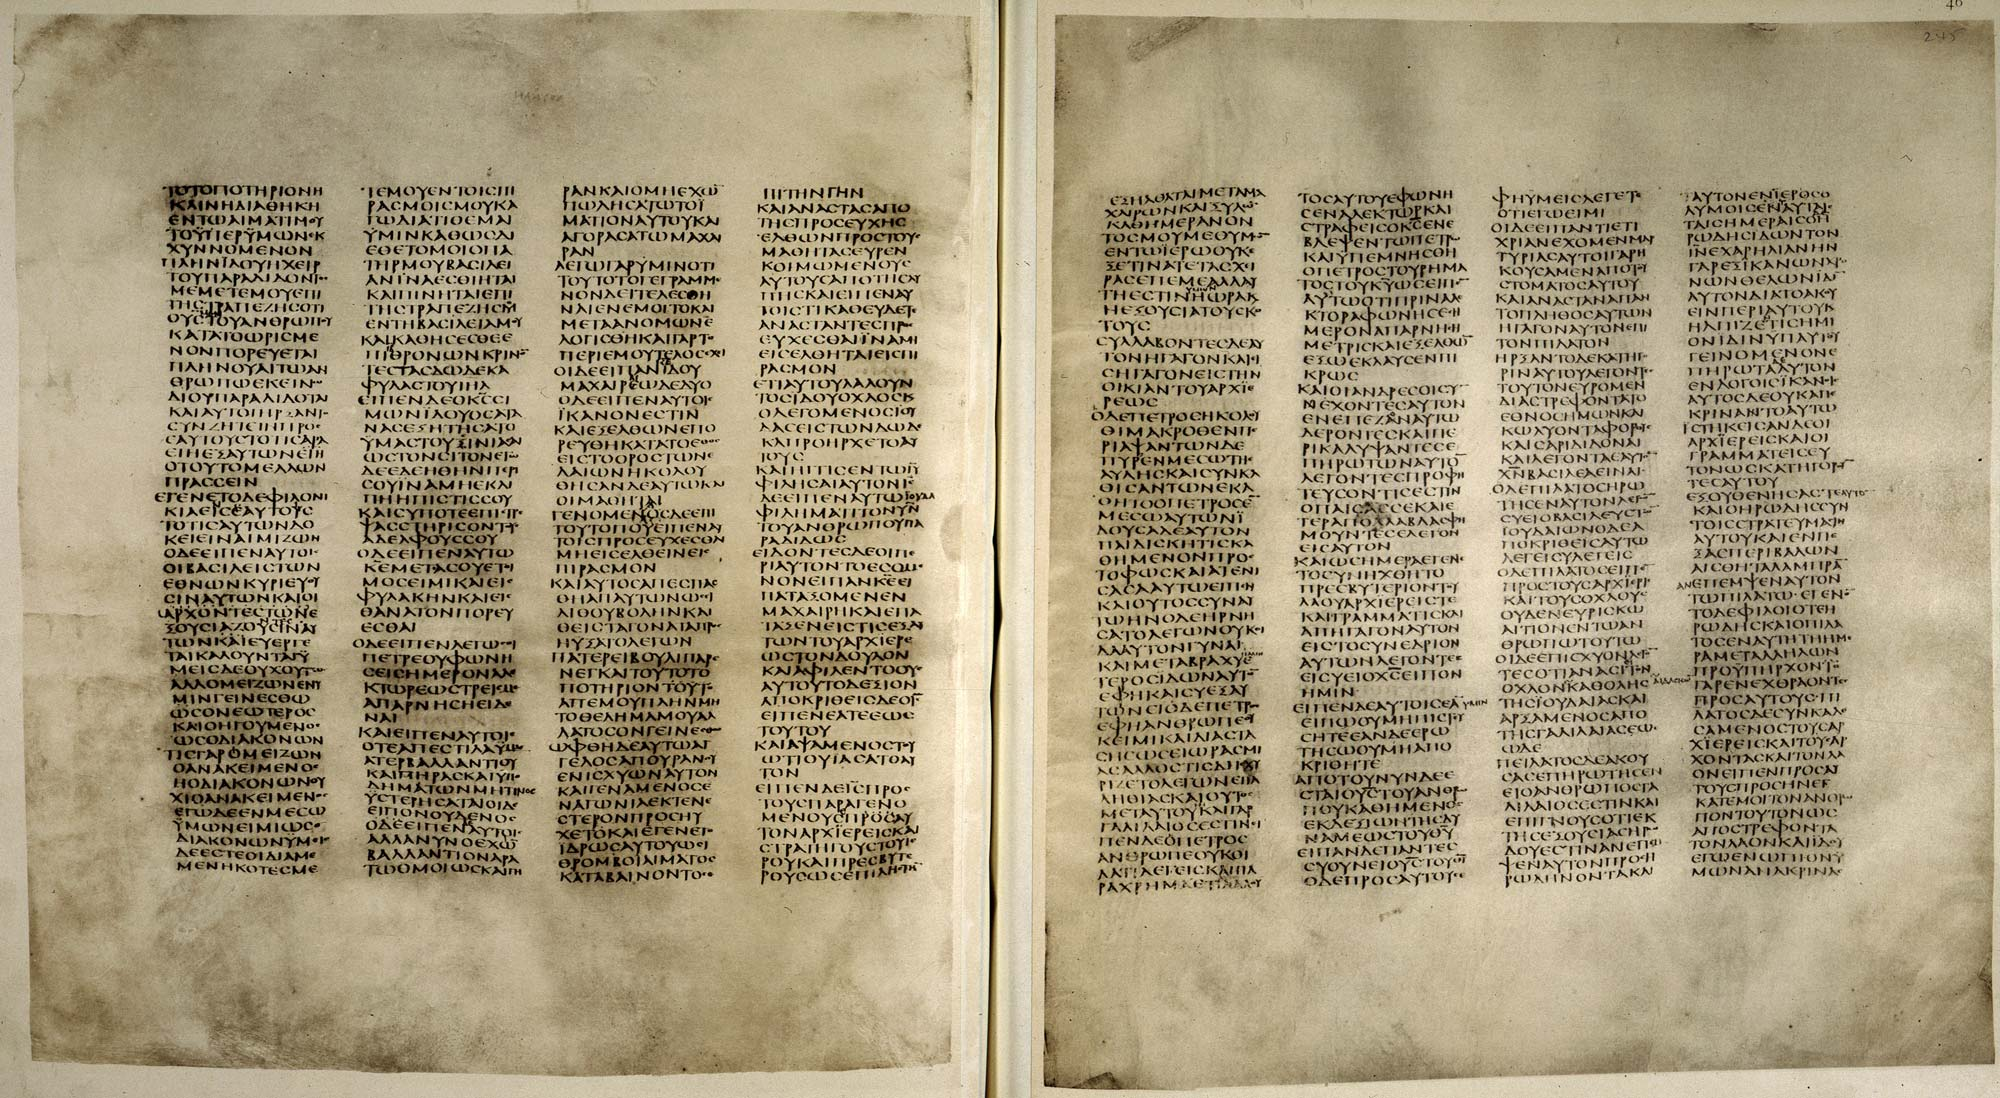 Codex Sinaiticus f.244v-245. Open at St Luke's Gospel, chapter 22, 20-71 chapter 23, 1-13